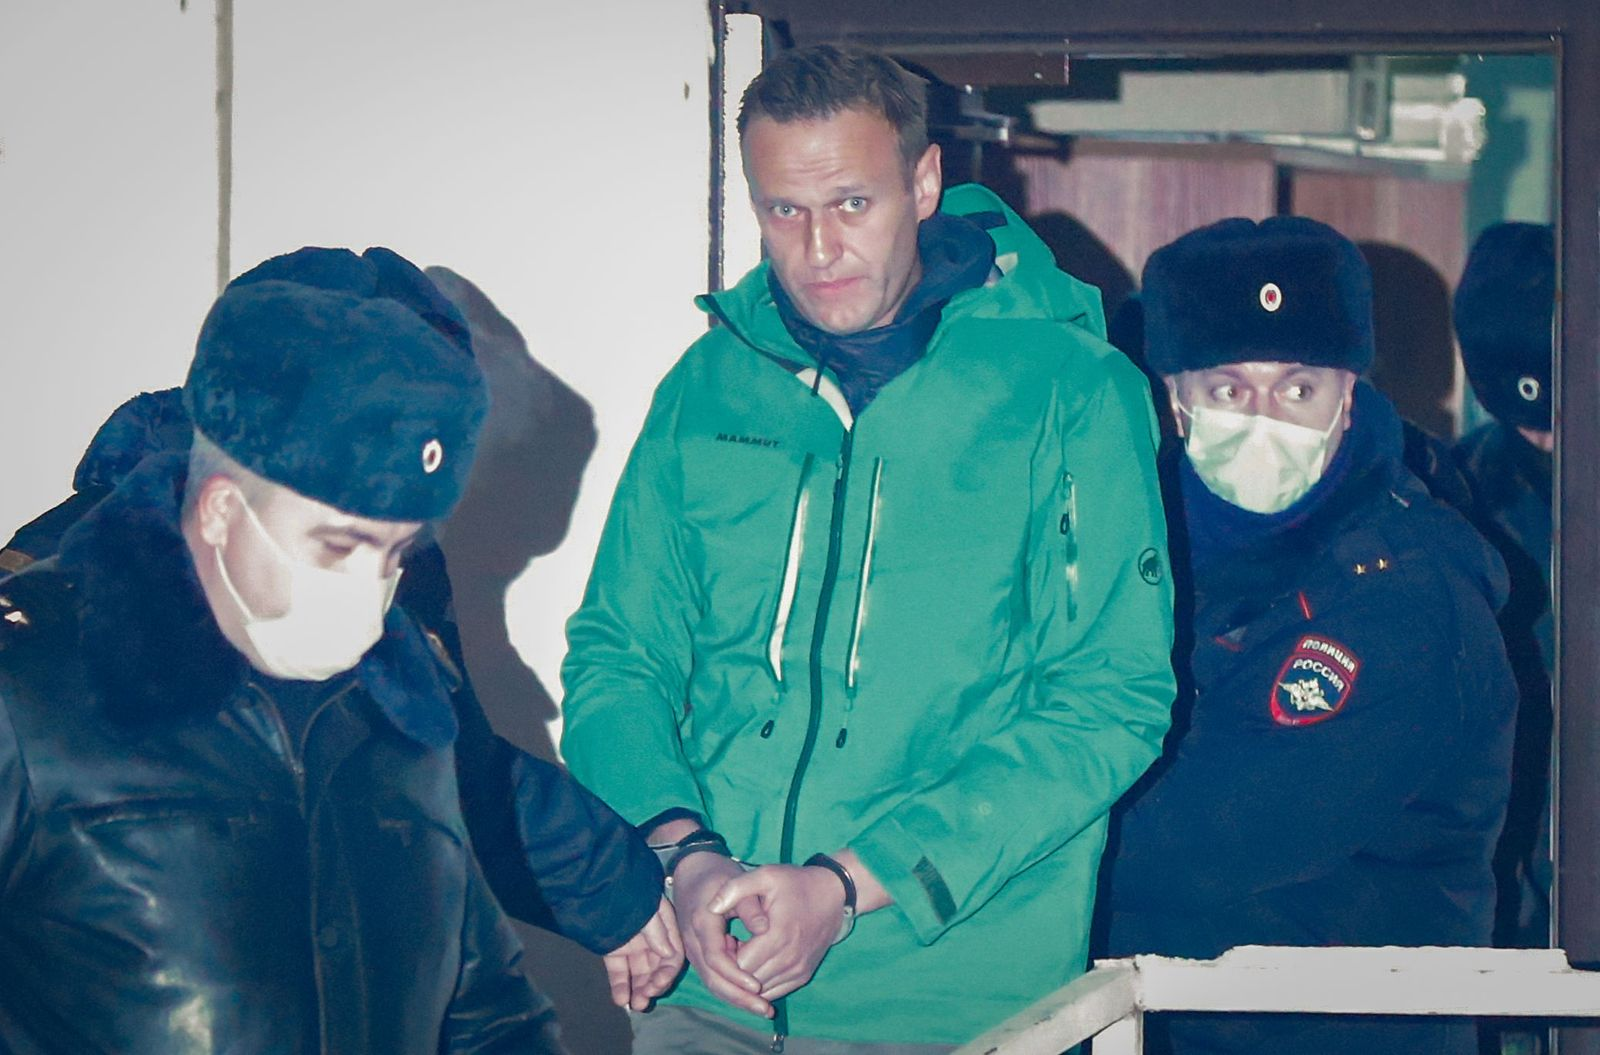 Russian opposition leader Alexei Navalny arrested, Moscow, Russian Federation - 18 Jan 2021